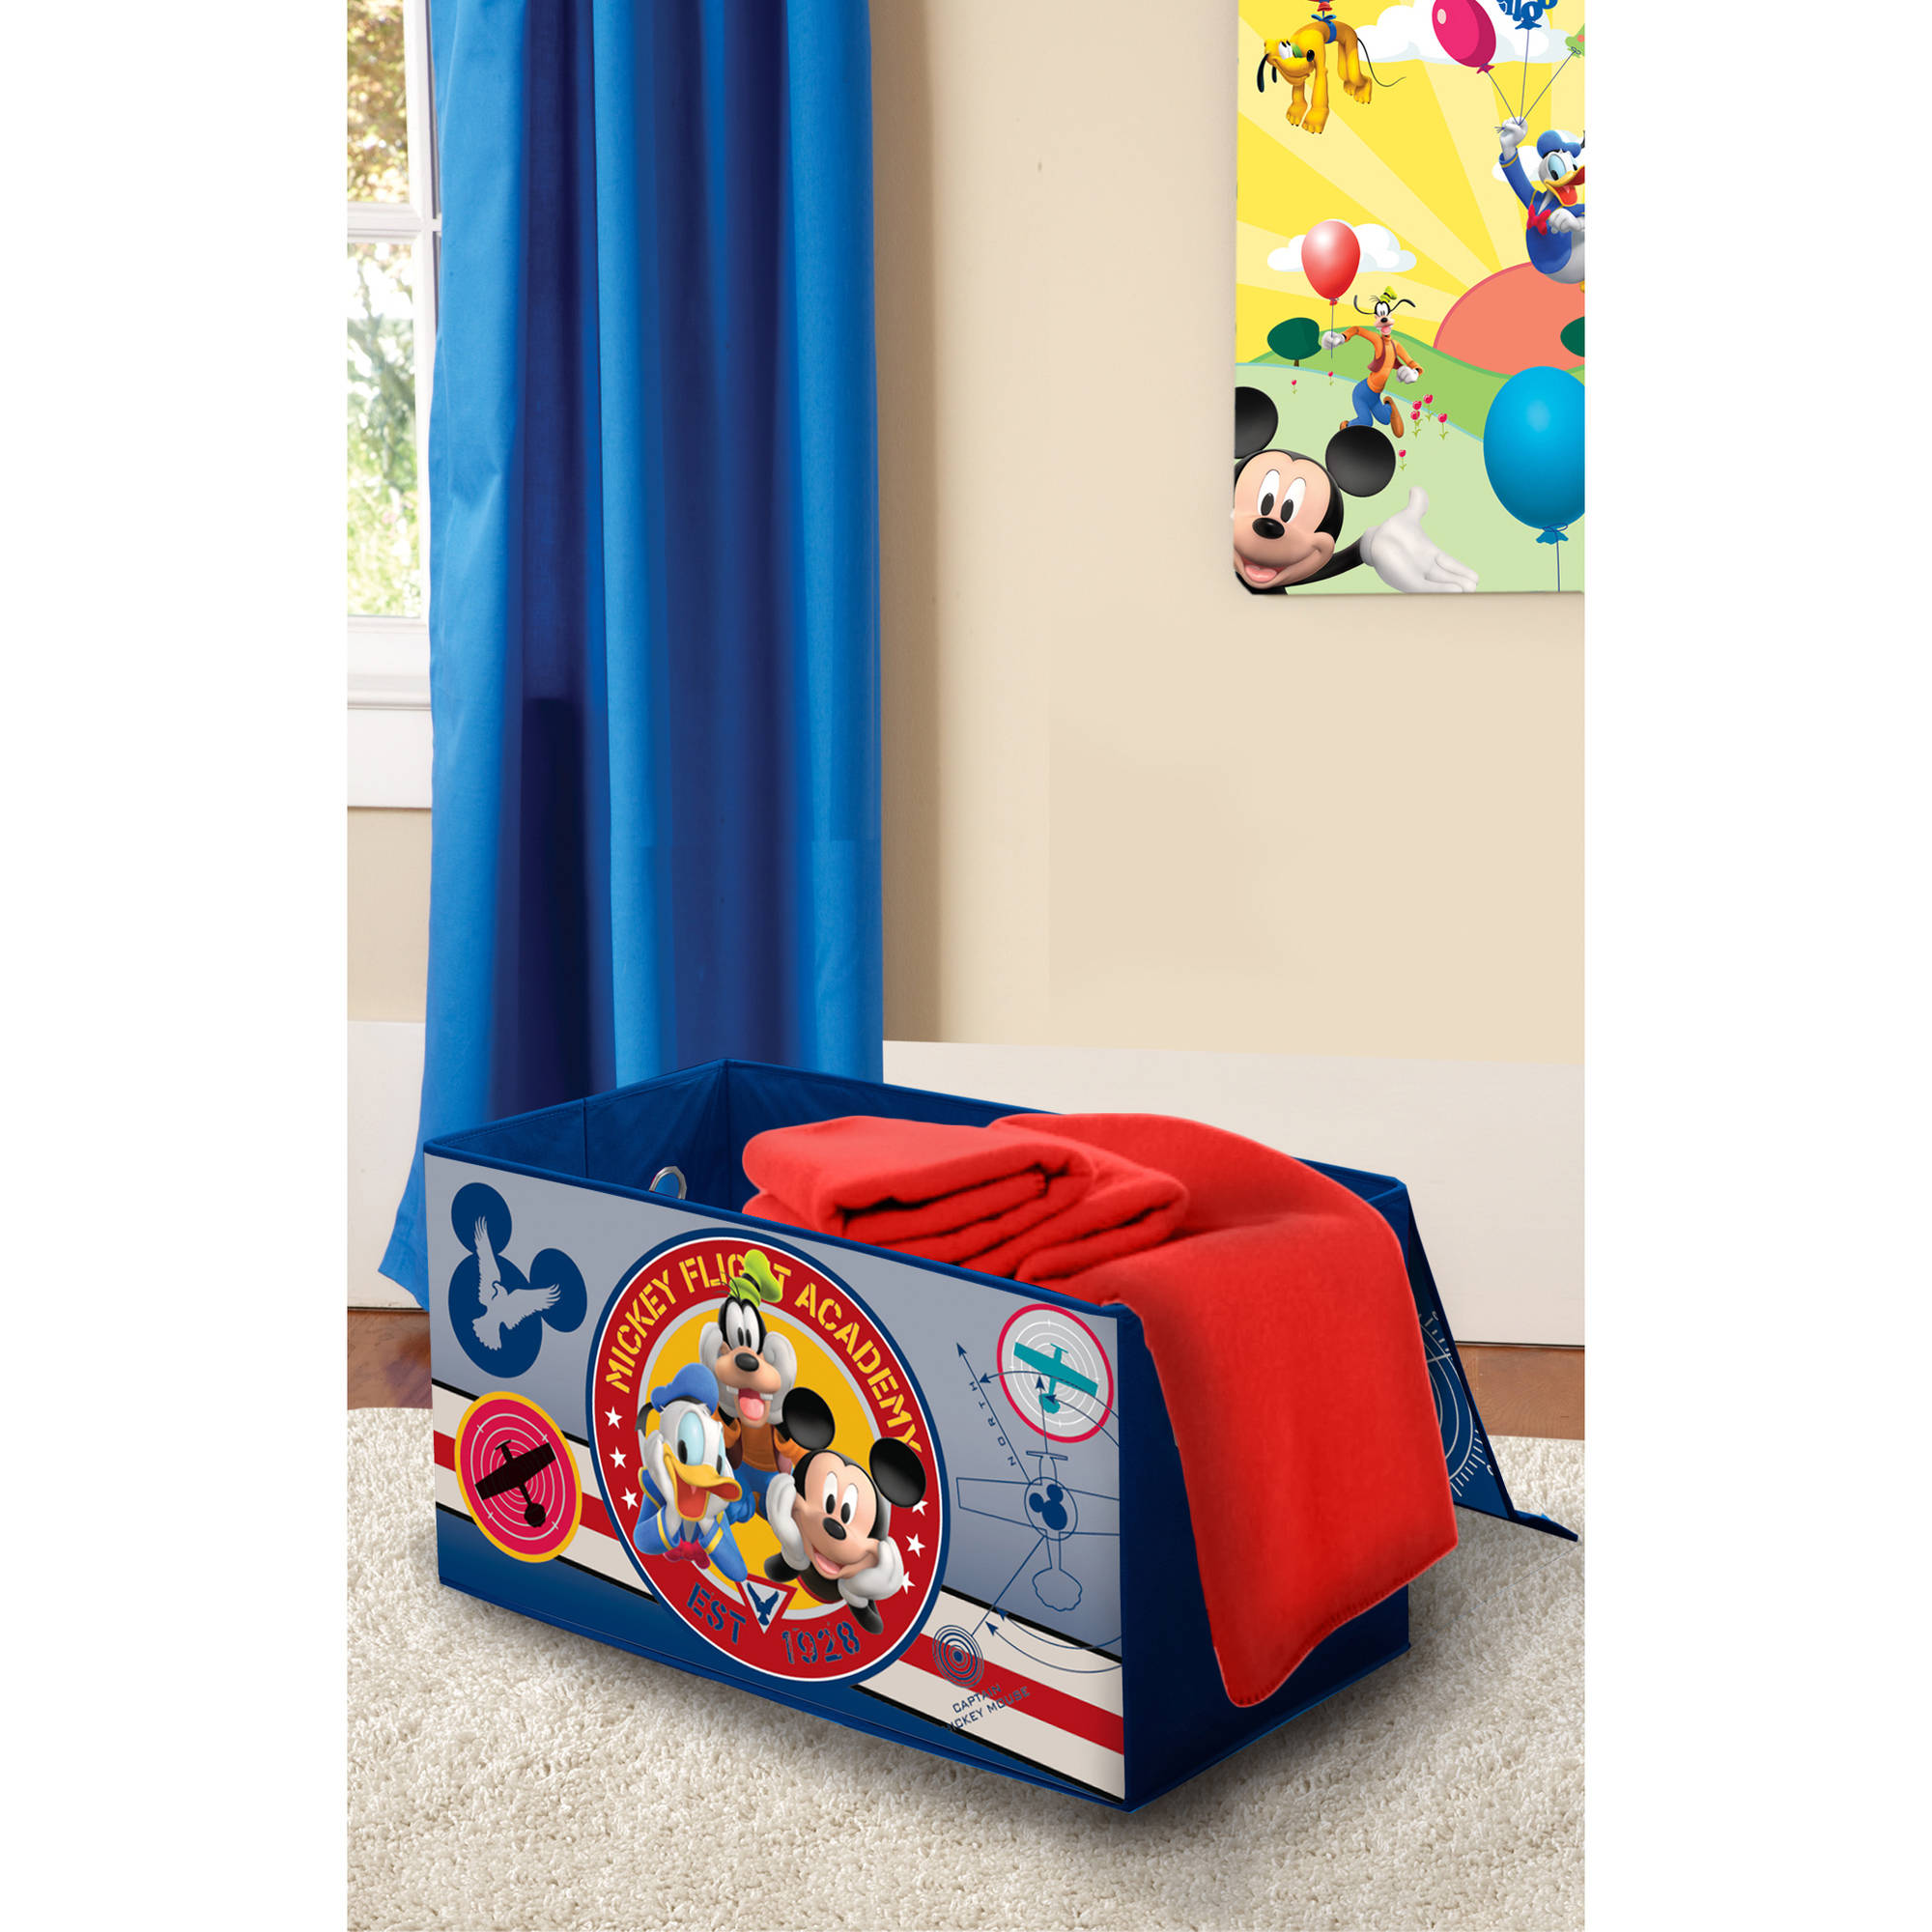 Mickey Mouse Bedroom Furniture Disney Mickey Mouse Room In A Box With Bonus Toy Bin Walmartcom